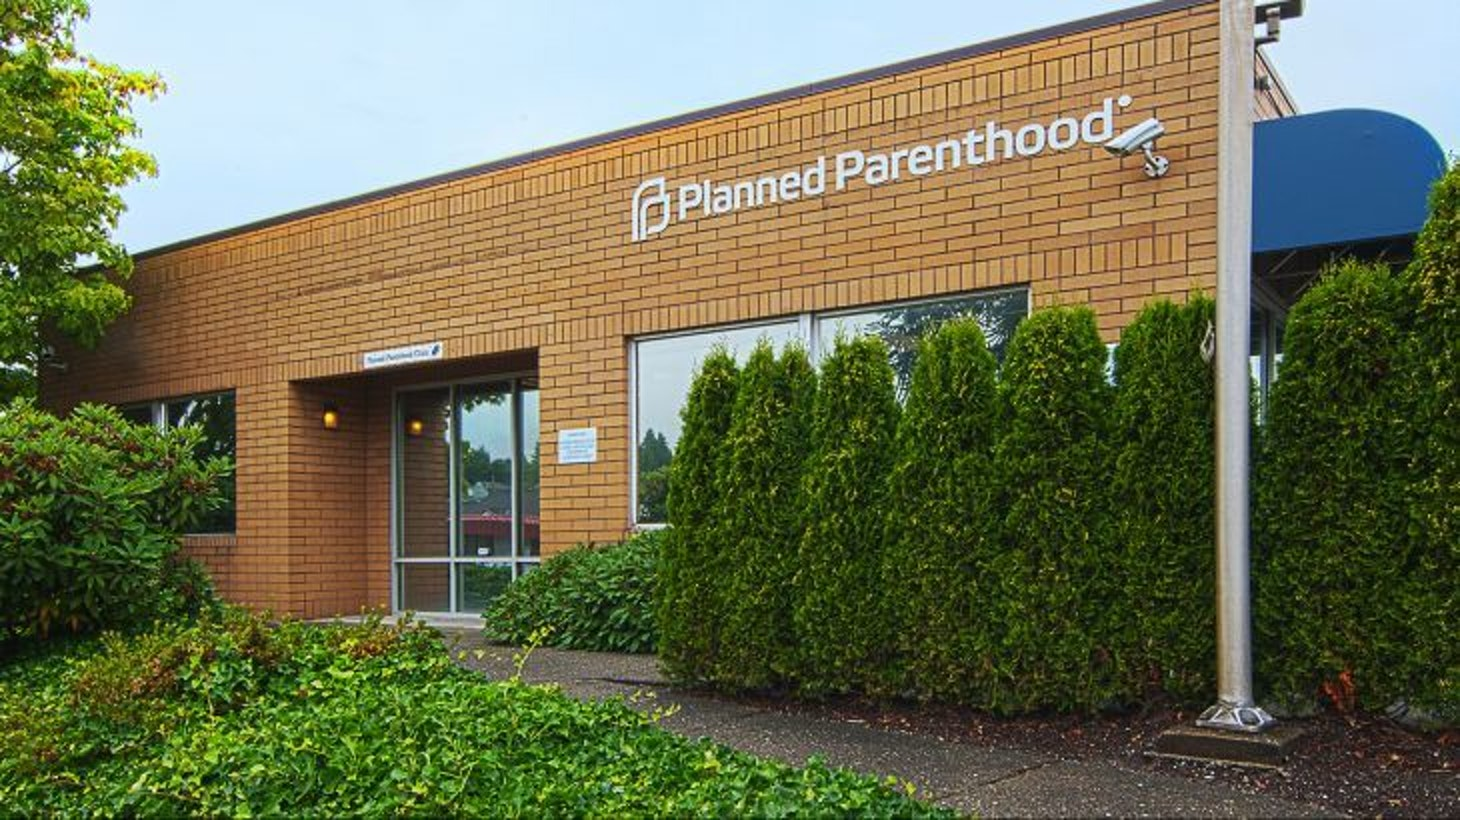 A Planned Parenthood resources center.